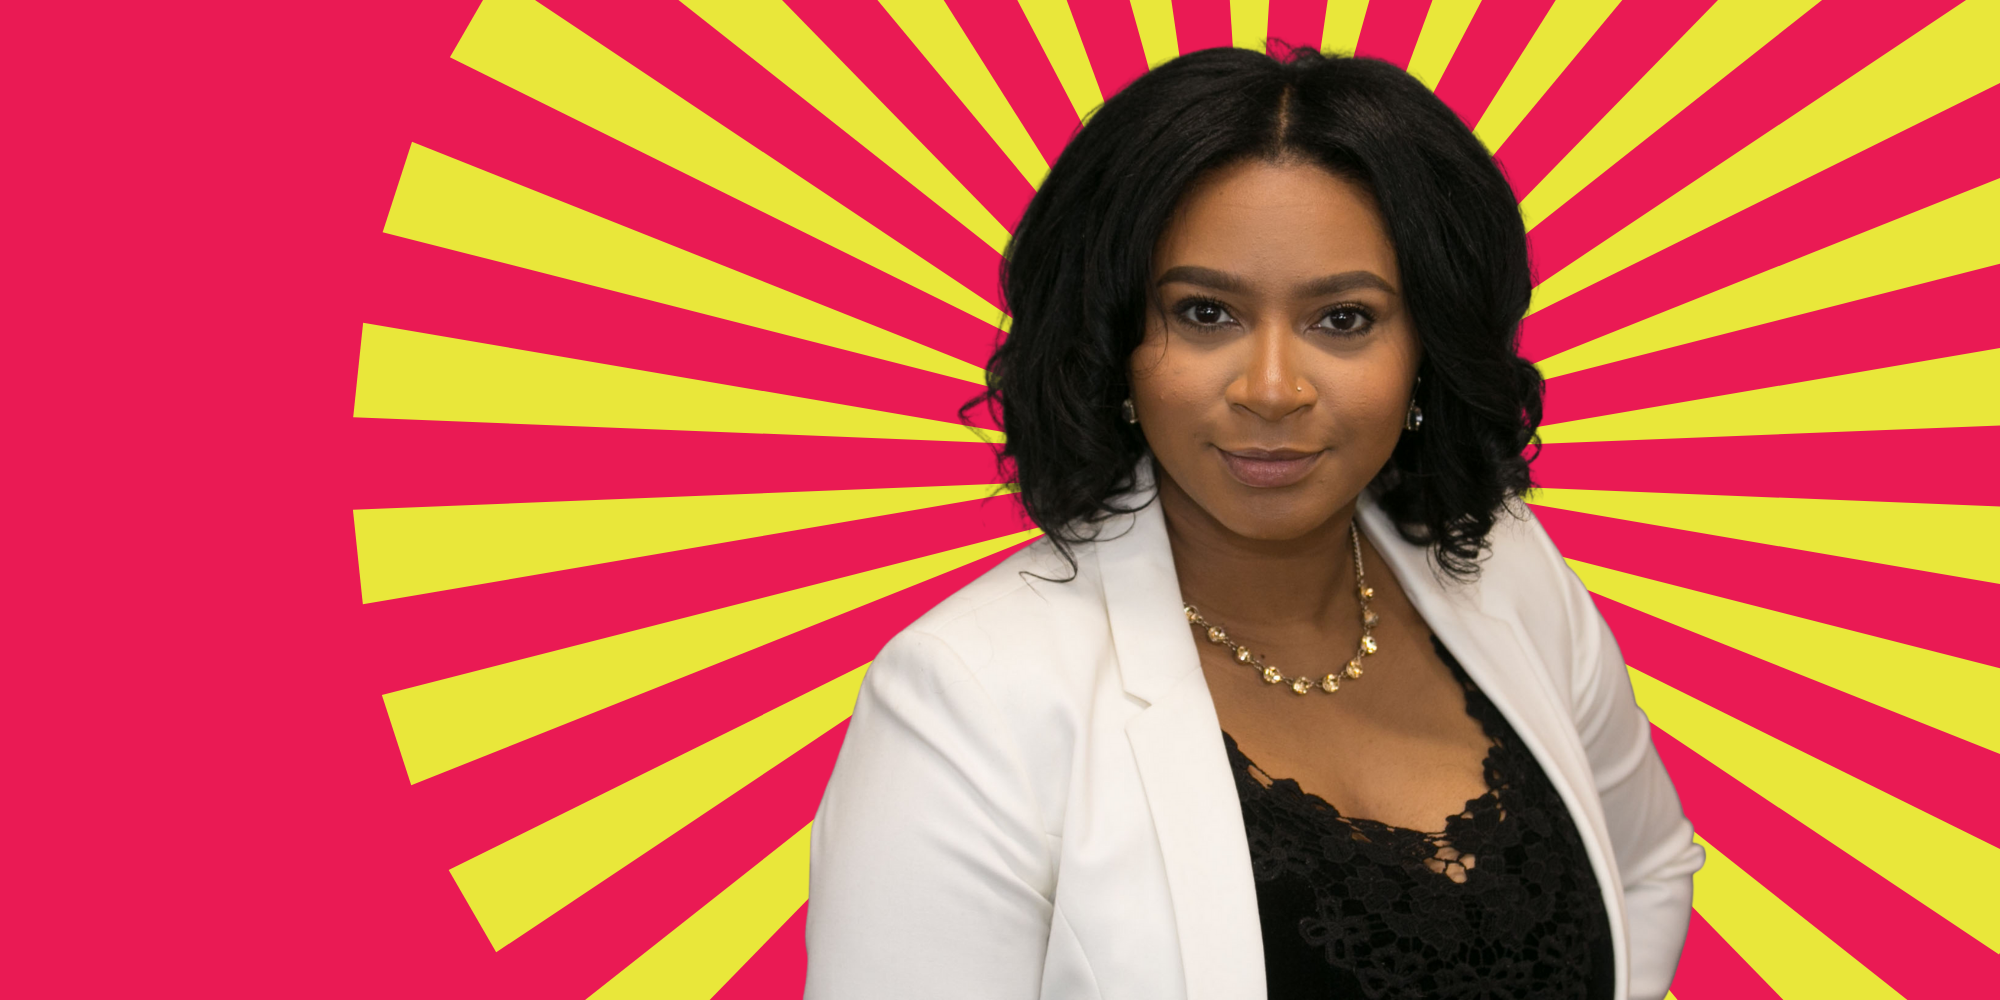 Our team is thrilled to reintroduce you to Tierra Stewart as she steps into the Chief Program Officer role.